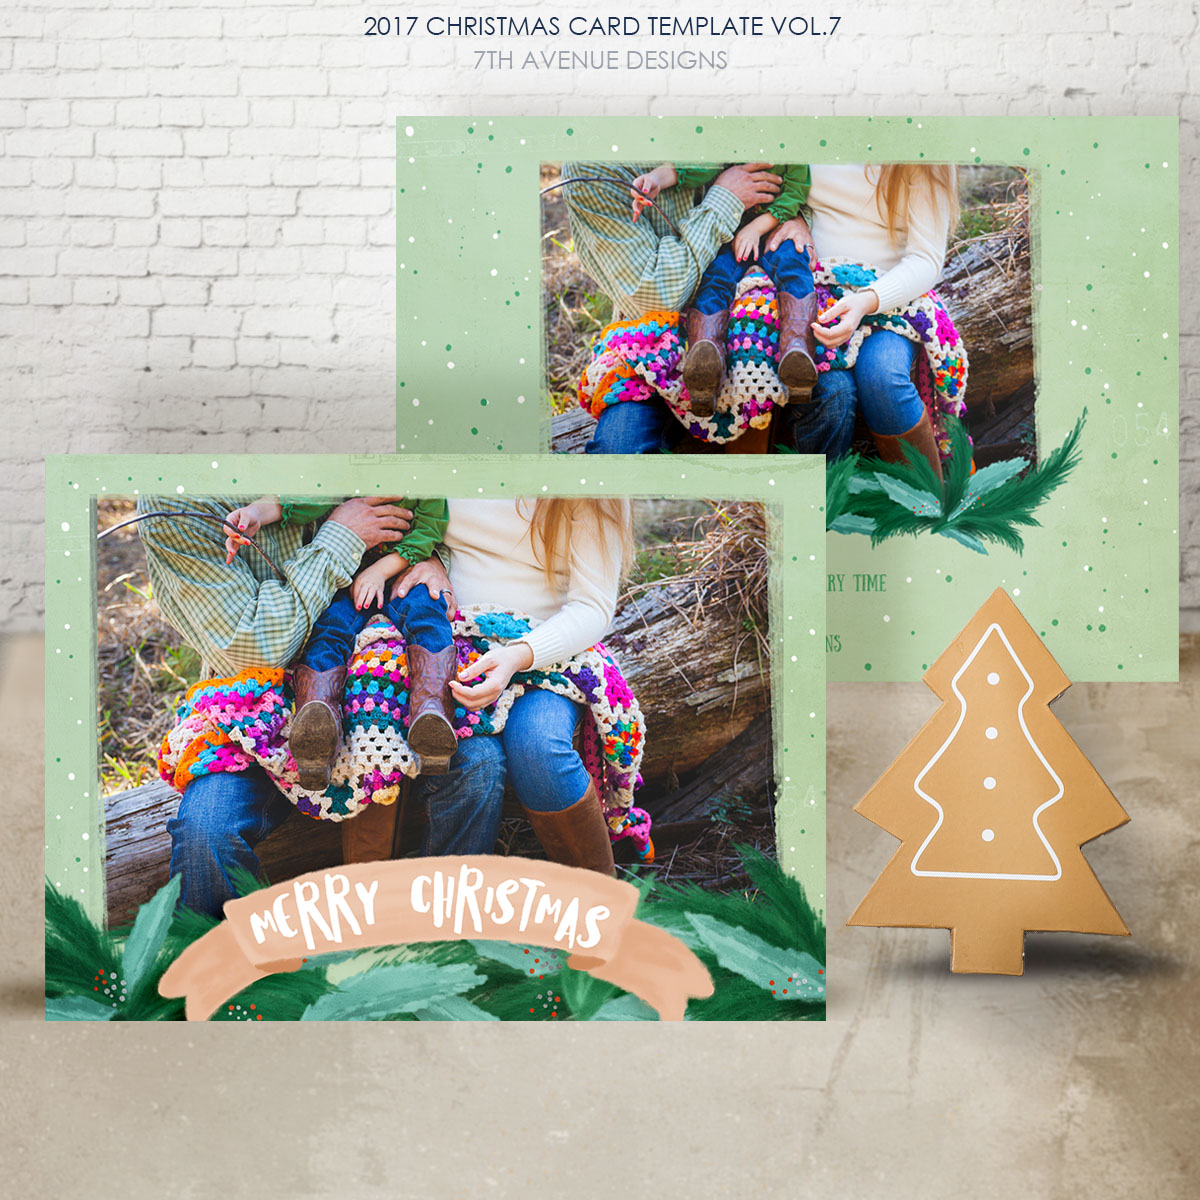 2017 Christmas Card Templates vol.7